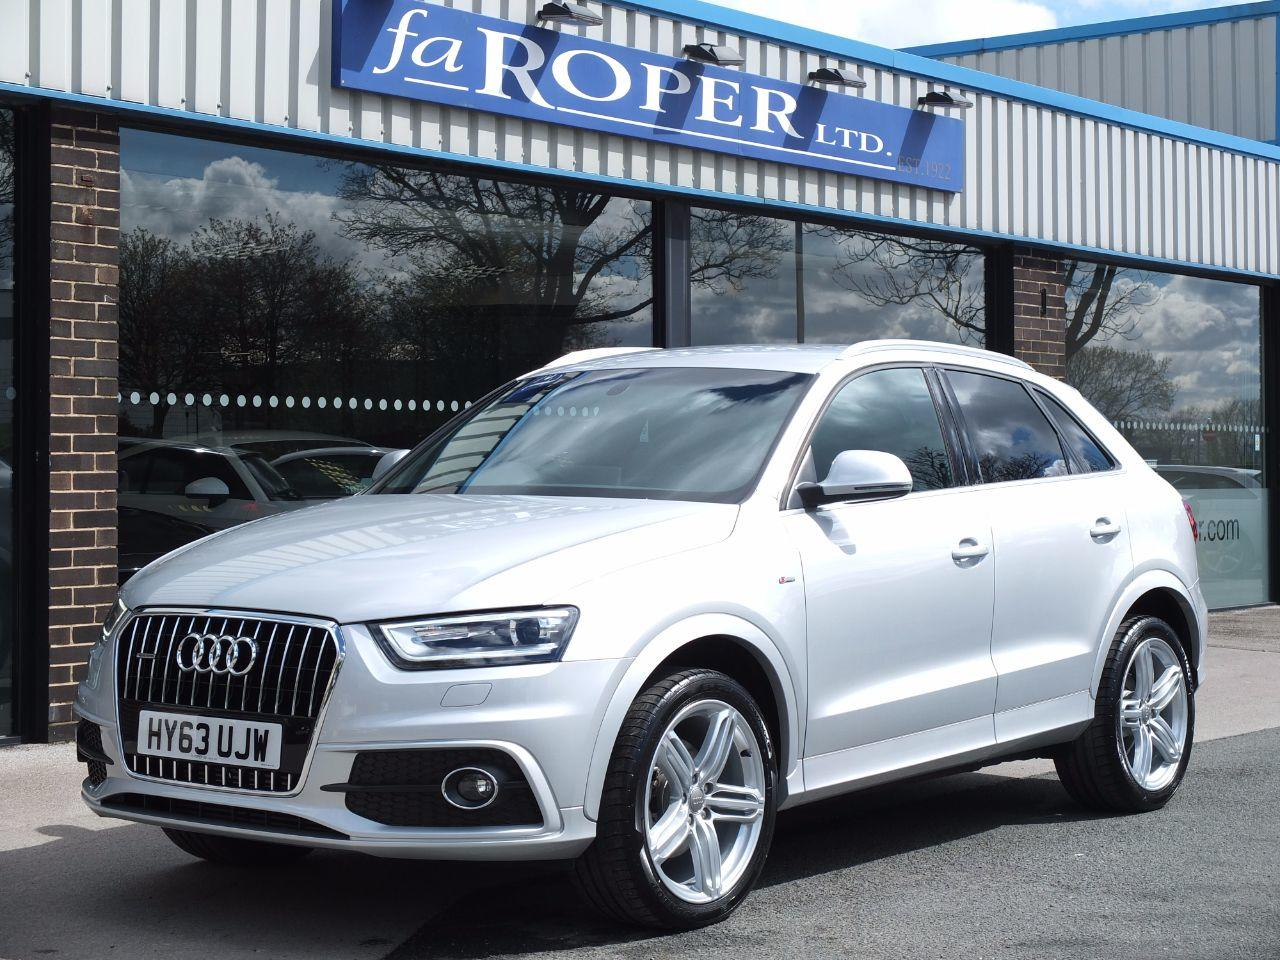 Audi Q3 2.0 TDI quattro S Line 140ps +++Spec Estate Diesel Ice Silver MetallicAudi Q3 2.0 TDI quattro S Line 140ps +++Spec Estate Diesel Ice Silver Metallic at fa Roper Ltd Bradford